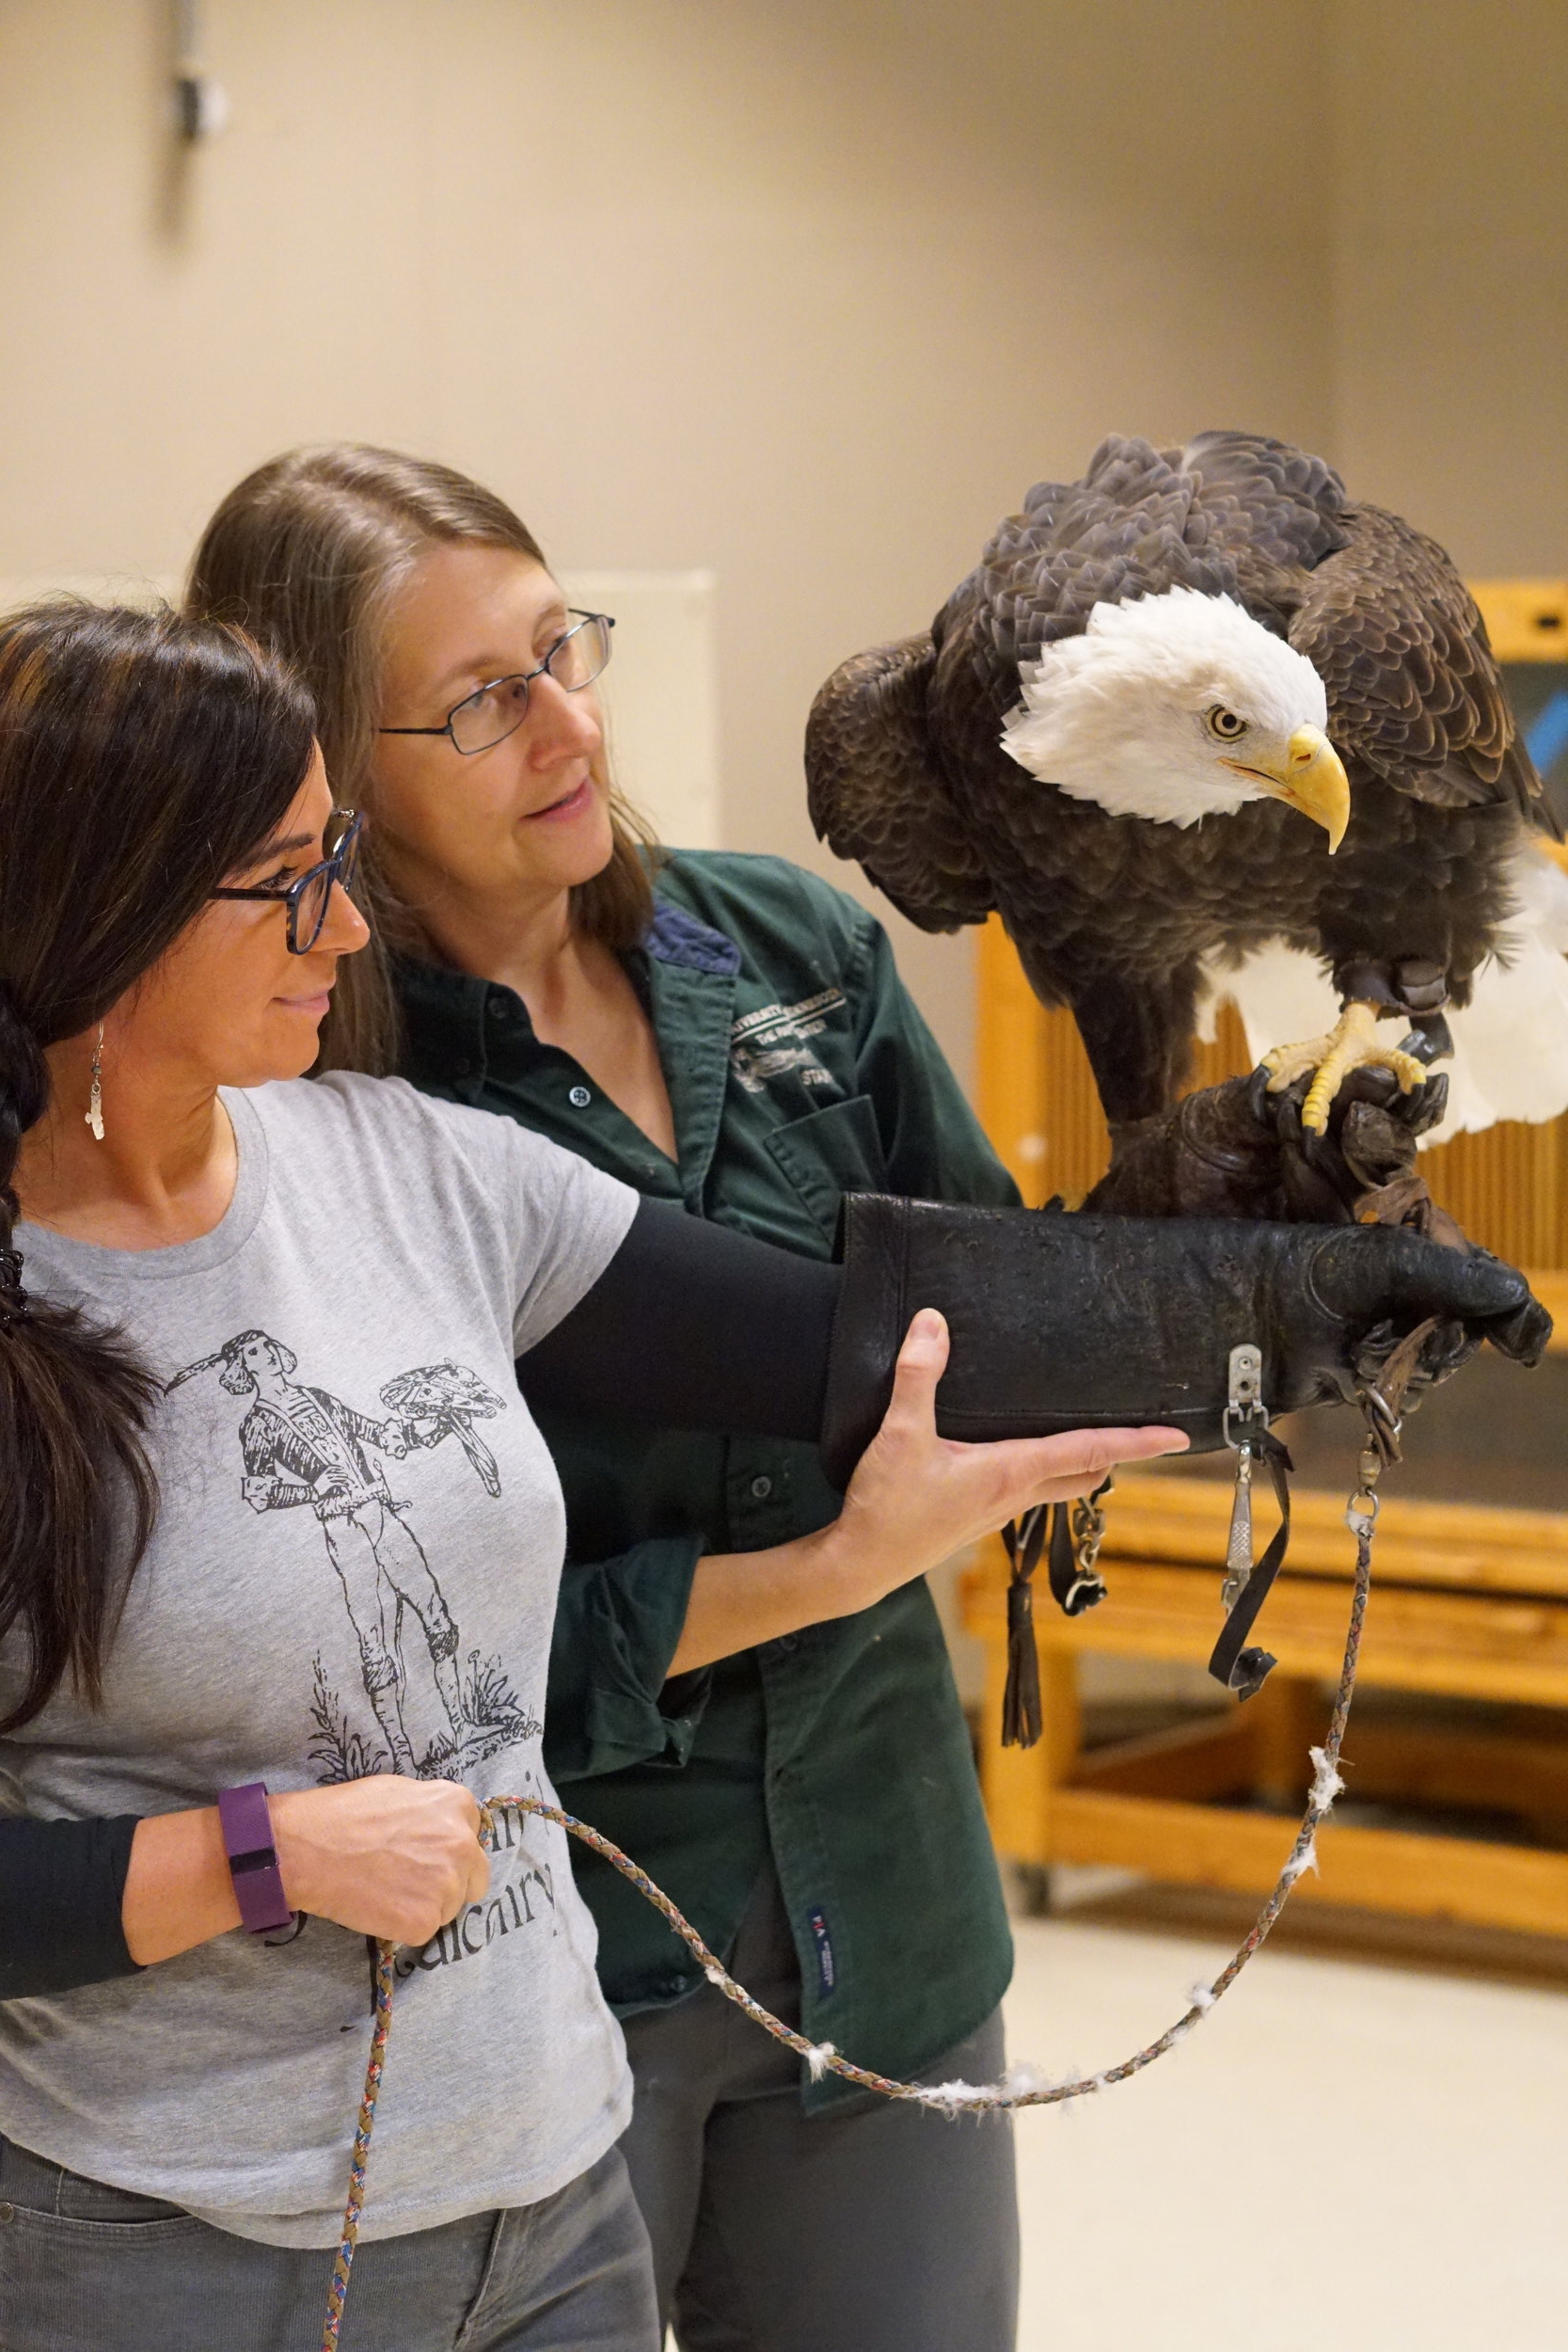 Rachel and TRC's Education Program Manager Gail Buhl work through passing off and handling a bald eagle.